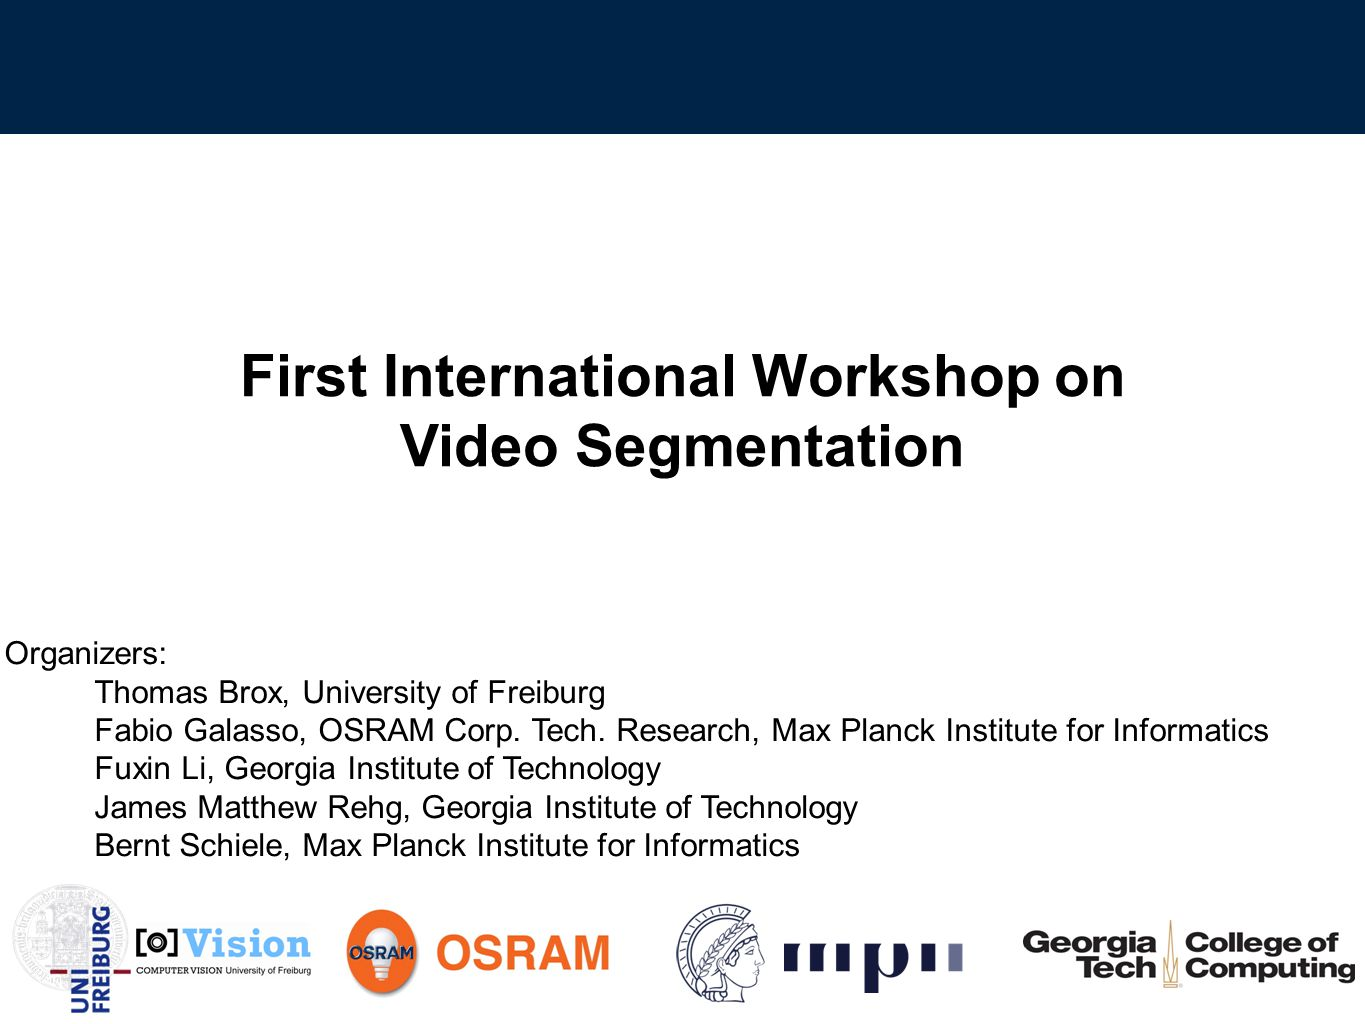 First International Workshop on Video Segmentation | Opening Today Dense full day program 5 Invited speakers 7 short talks ‣ Poster at lunch and coffee breaks ‣ Posters behind the room Short presentation by Michael Black Panel discussion: 4:30PM ‣ All invited speakers are invited to the panel 12